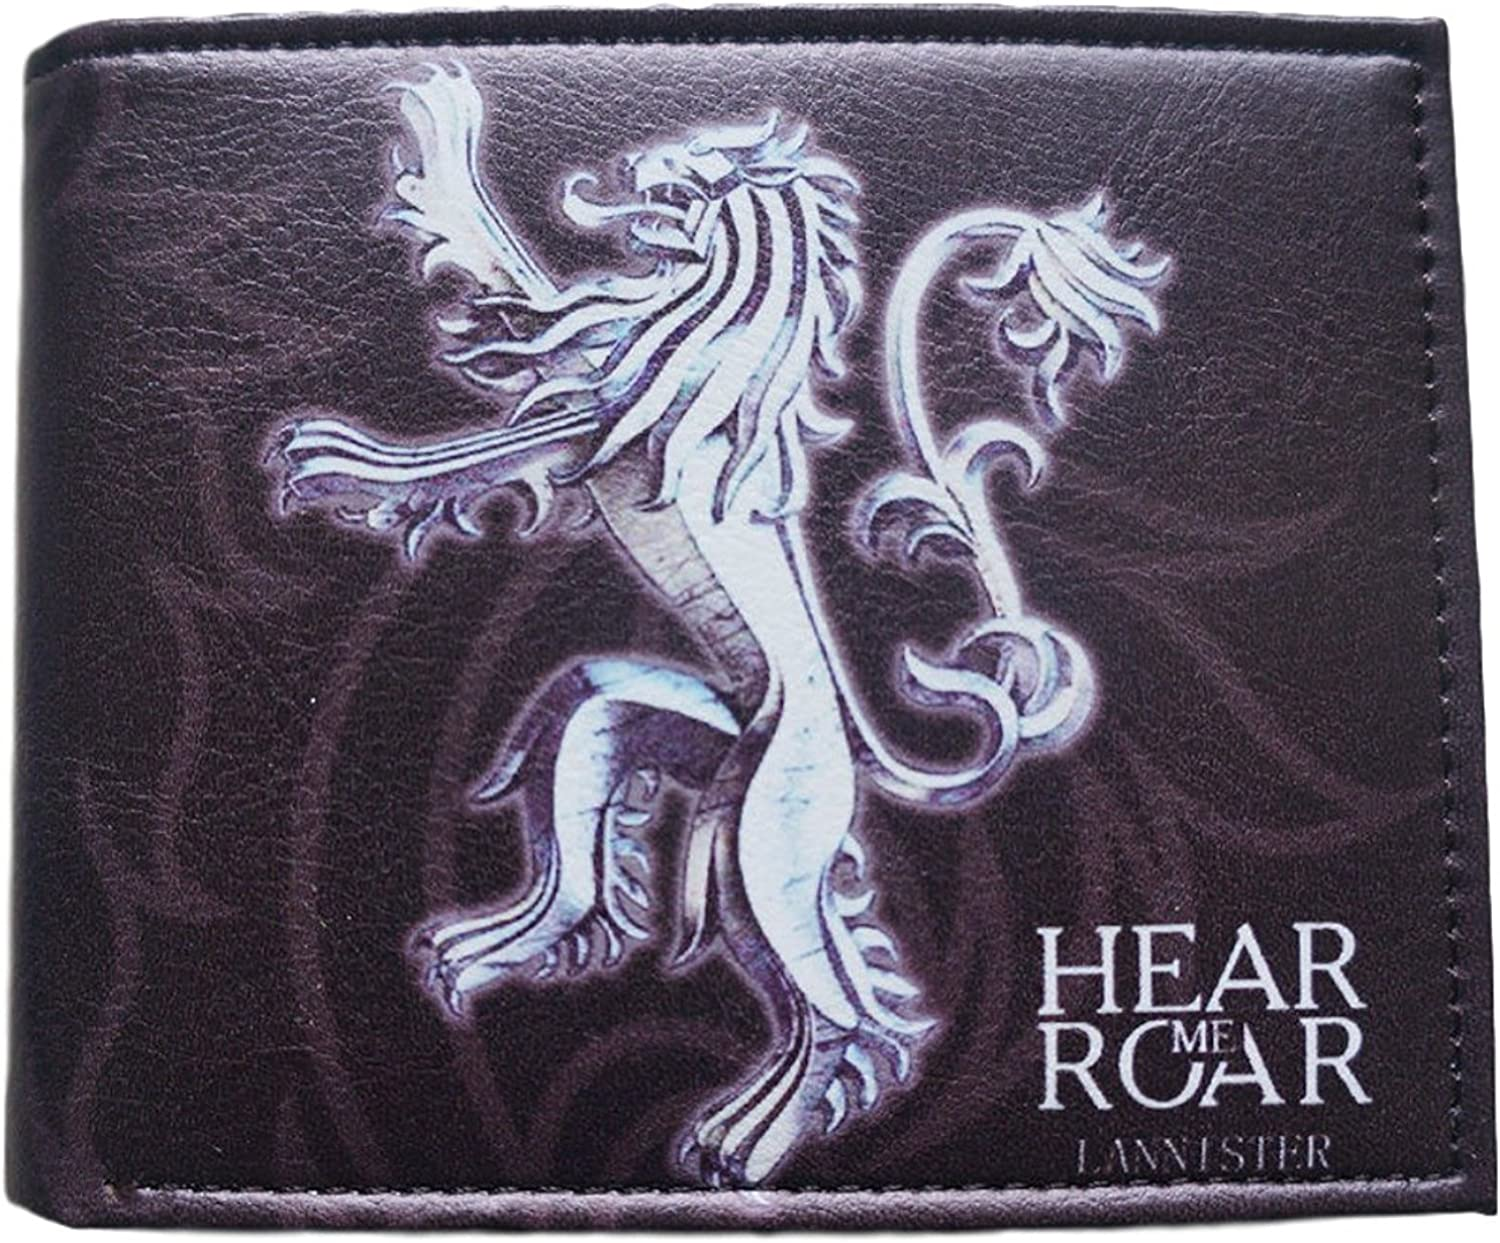 Game of Thrones House of Lannister Lion Sygil Hear Me Roar TV Show Themed Look of Leather Bi-Fold Wallet (with Gift Box) B0195T85Y4